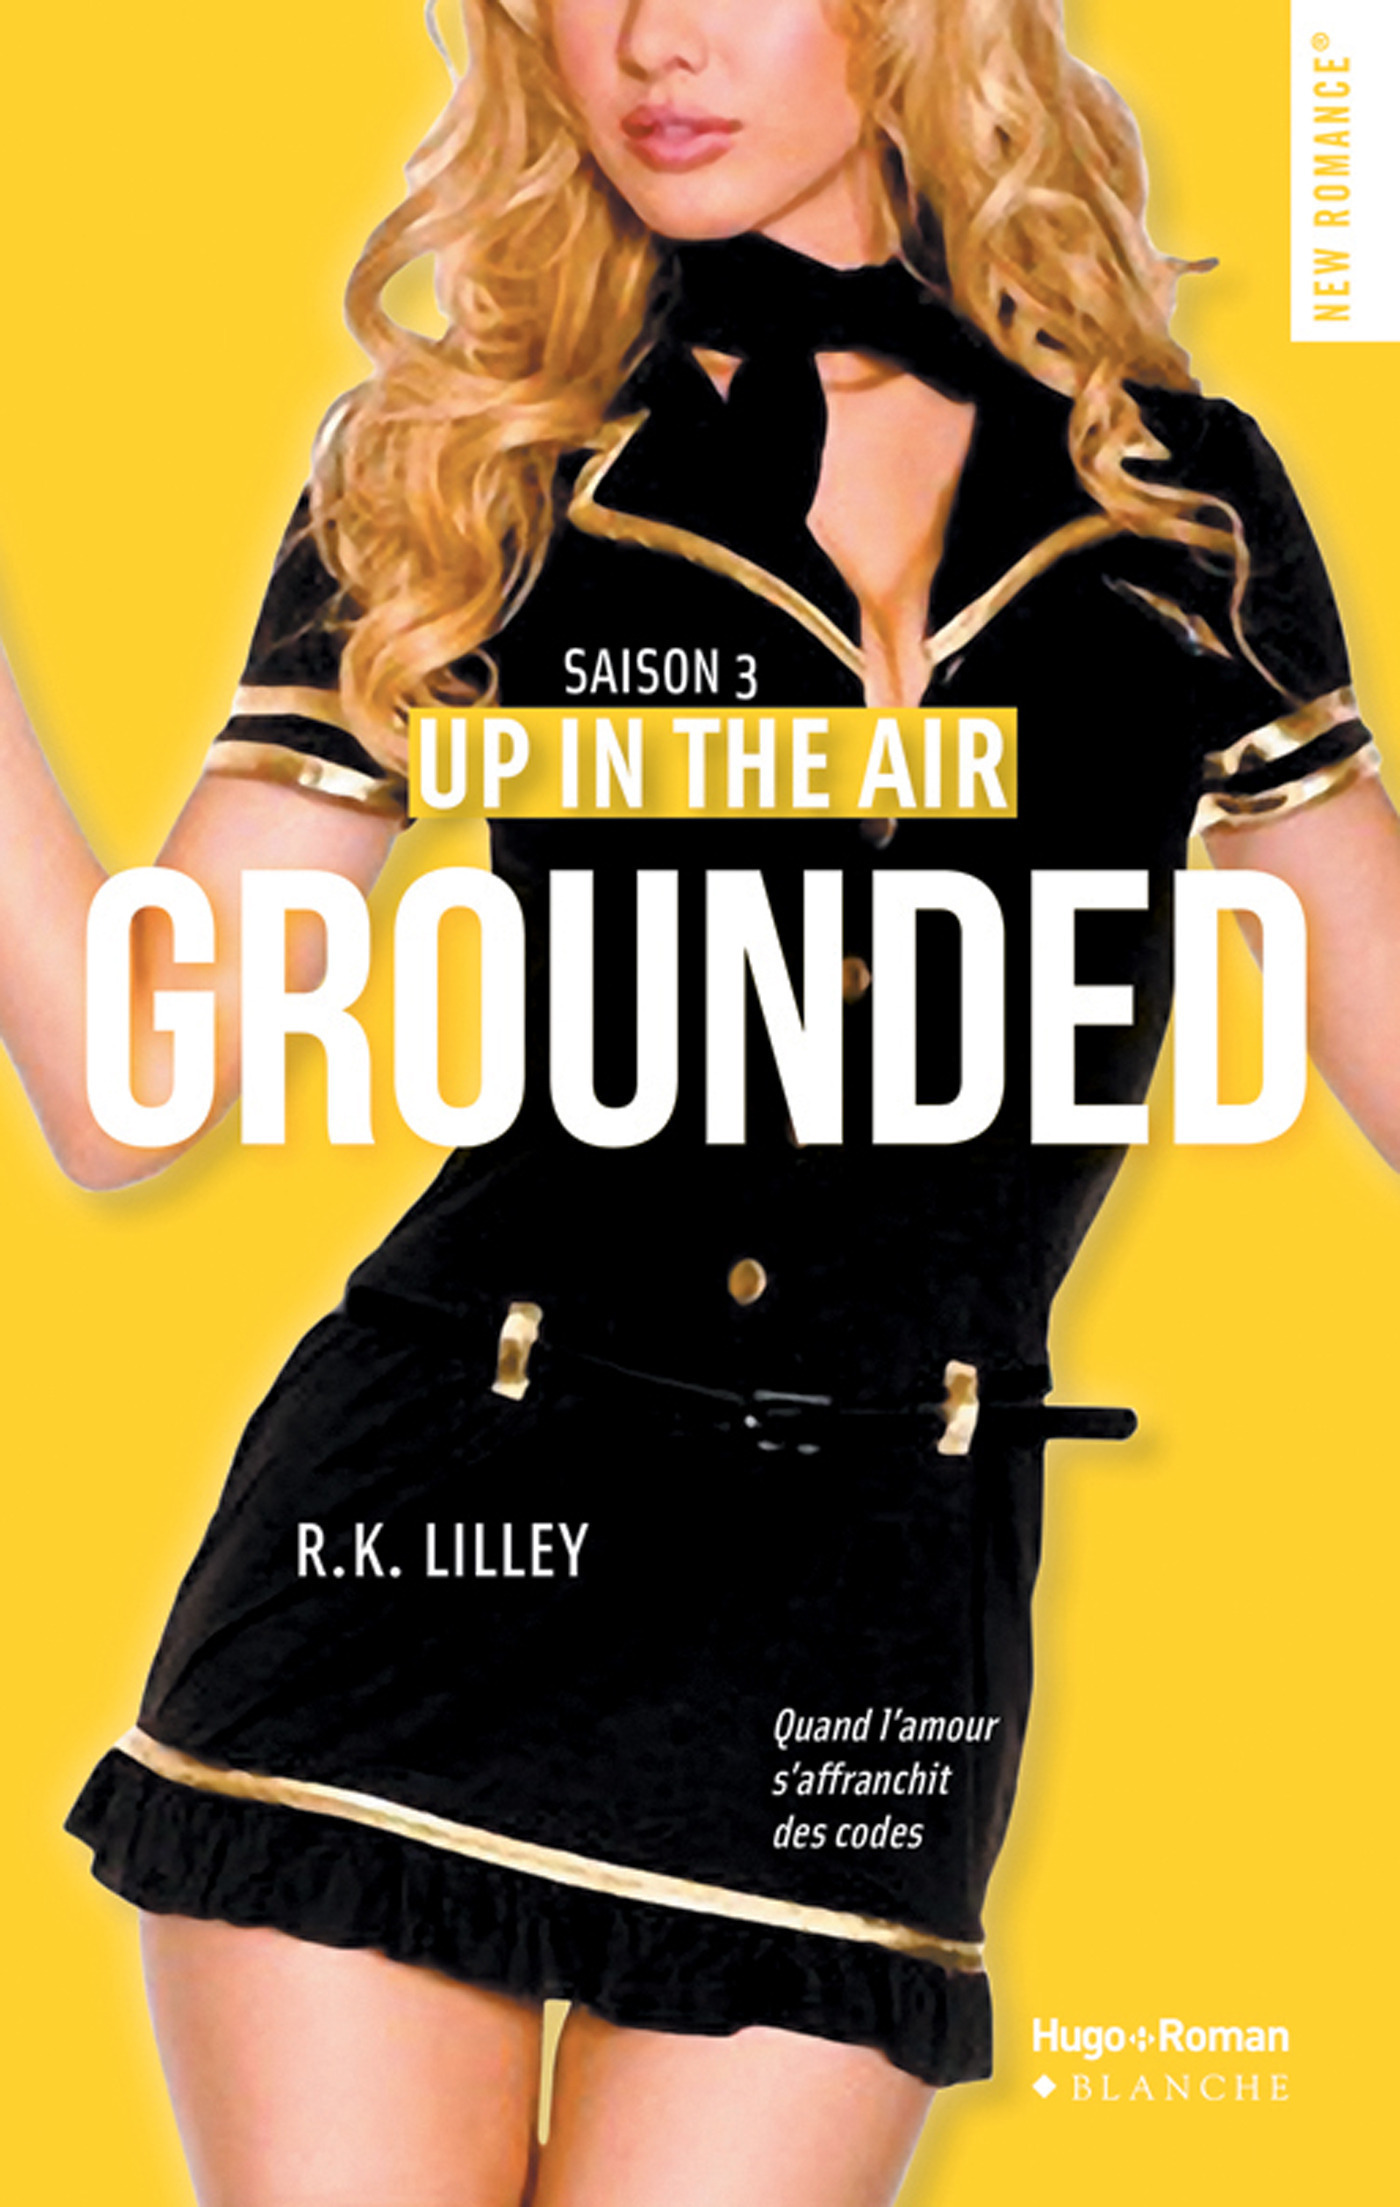 Up in the air Saison 3 Grounded -Extrait offert-